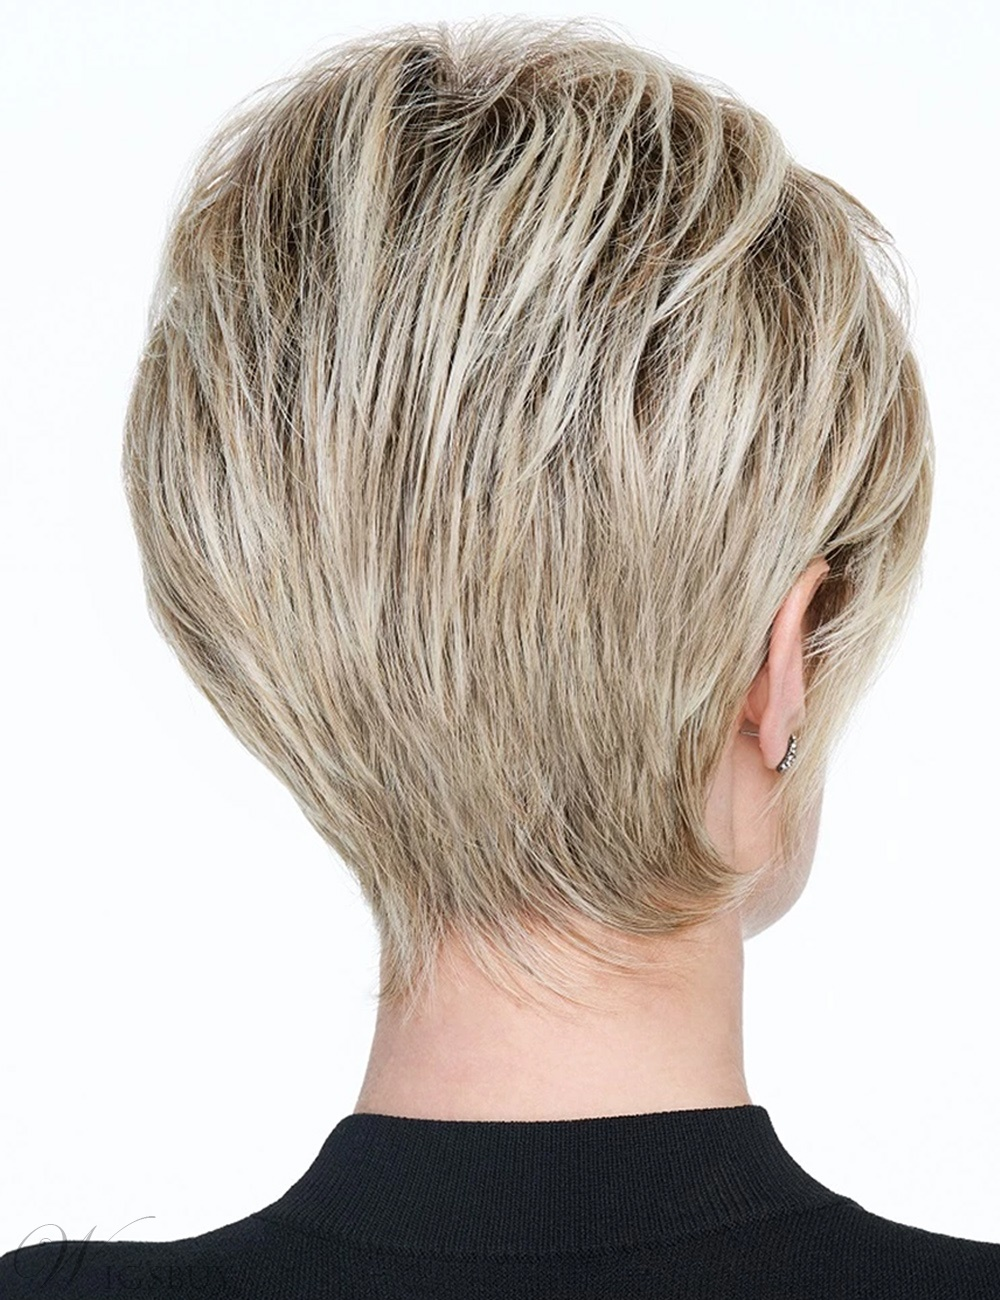 Short Pixie Cut Hairstyle Synthetic Straight Women Wigs 8Inches